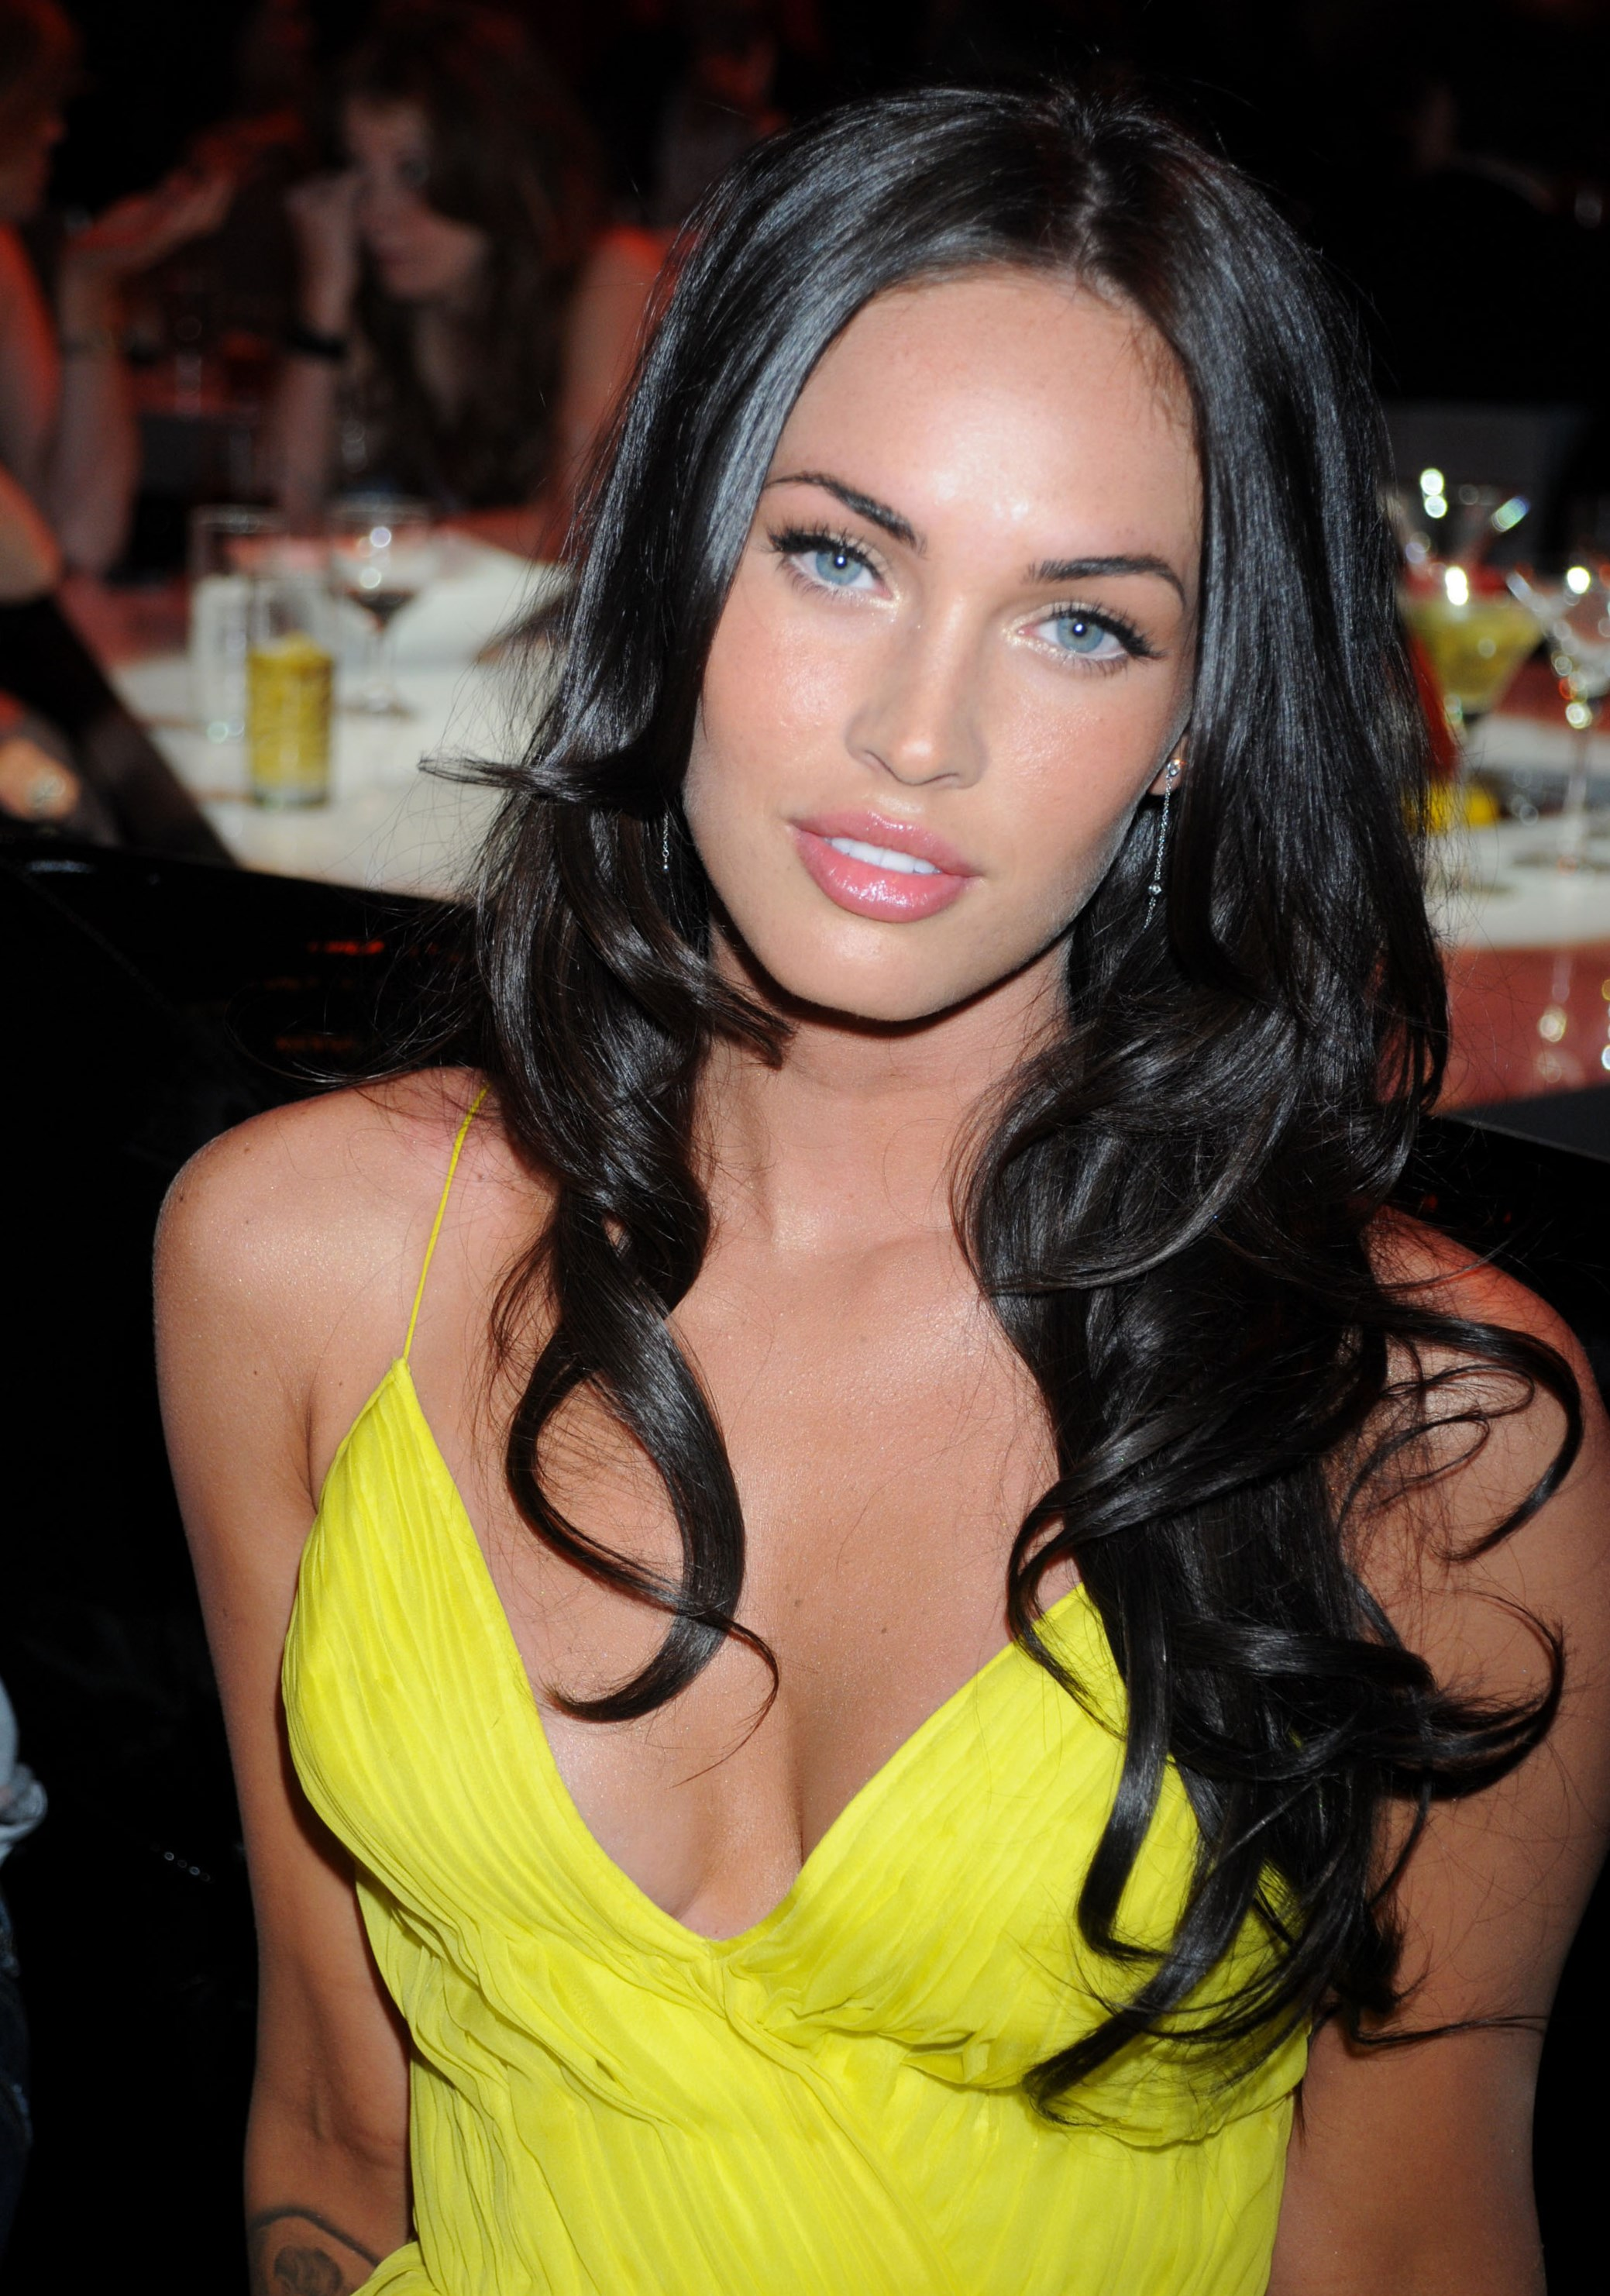 Megan Fox - Weight, Height and Age Megan Fox